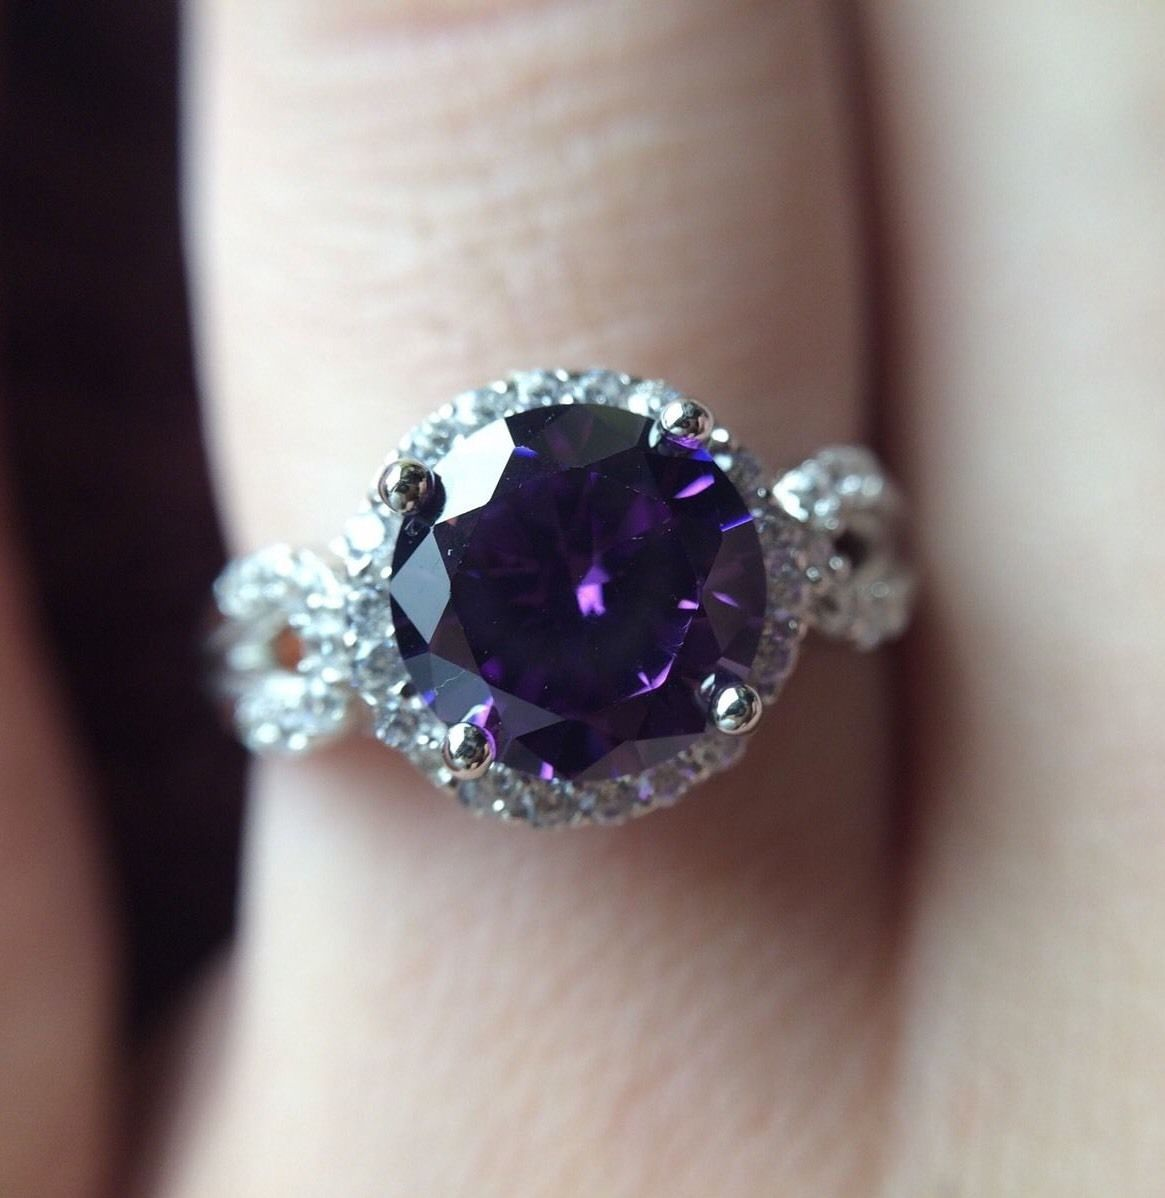 Stunning 2CT Amethyst & White Topaz 925 Sterling Silver Ring Sz 7